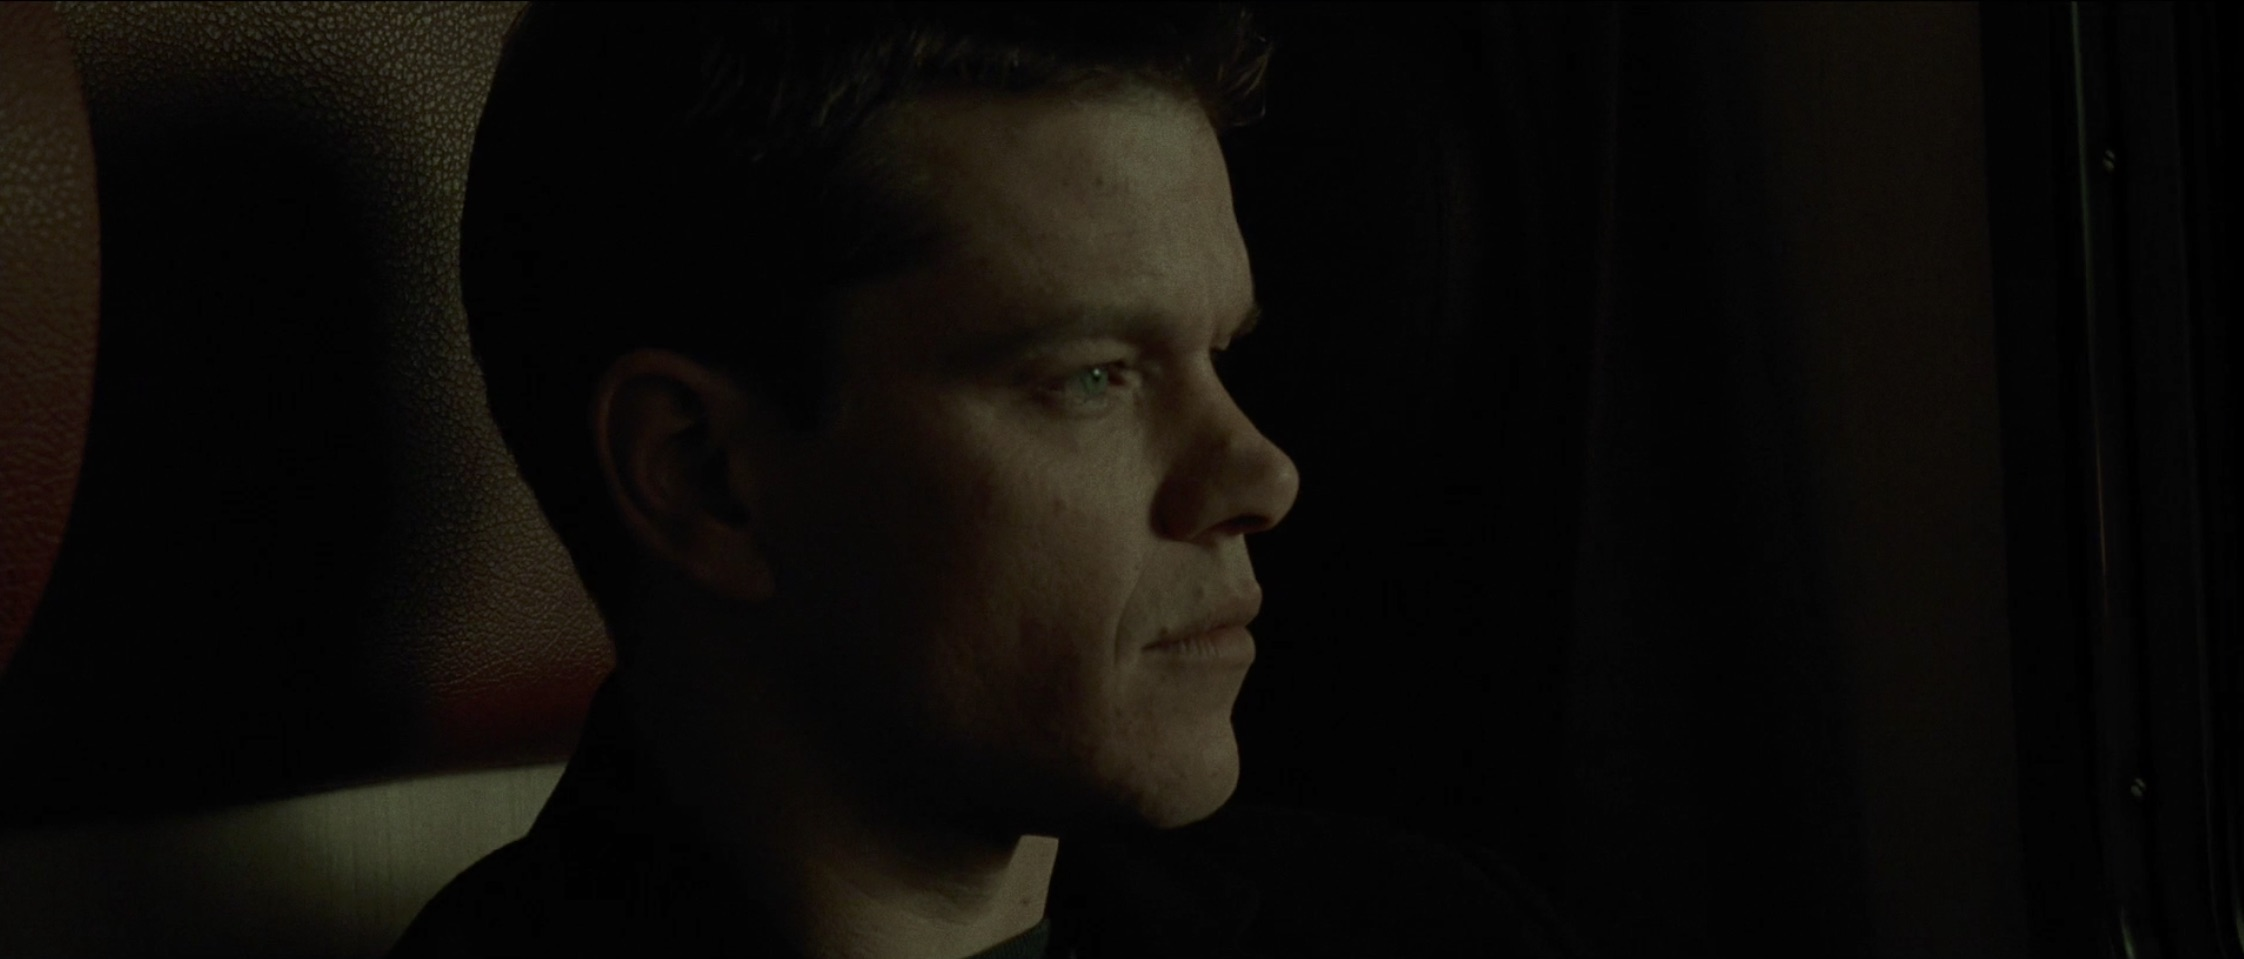 Jason Bourne Side profile